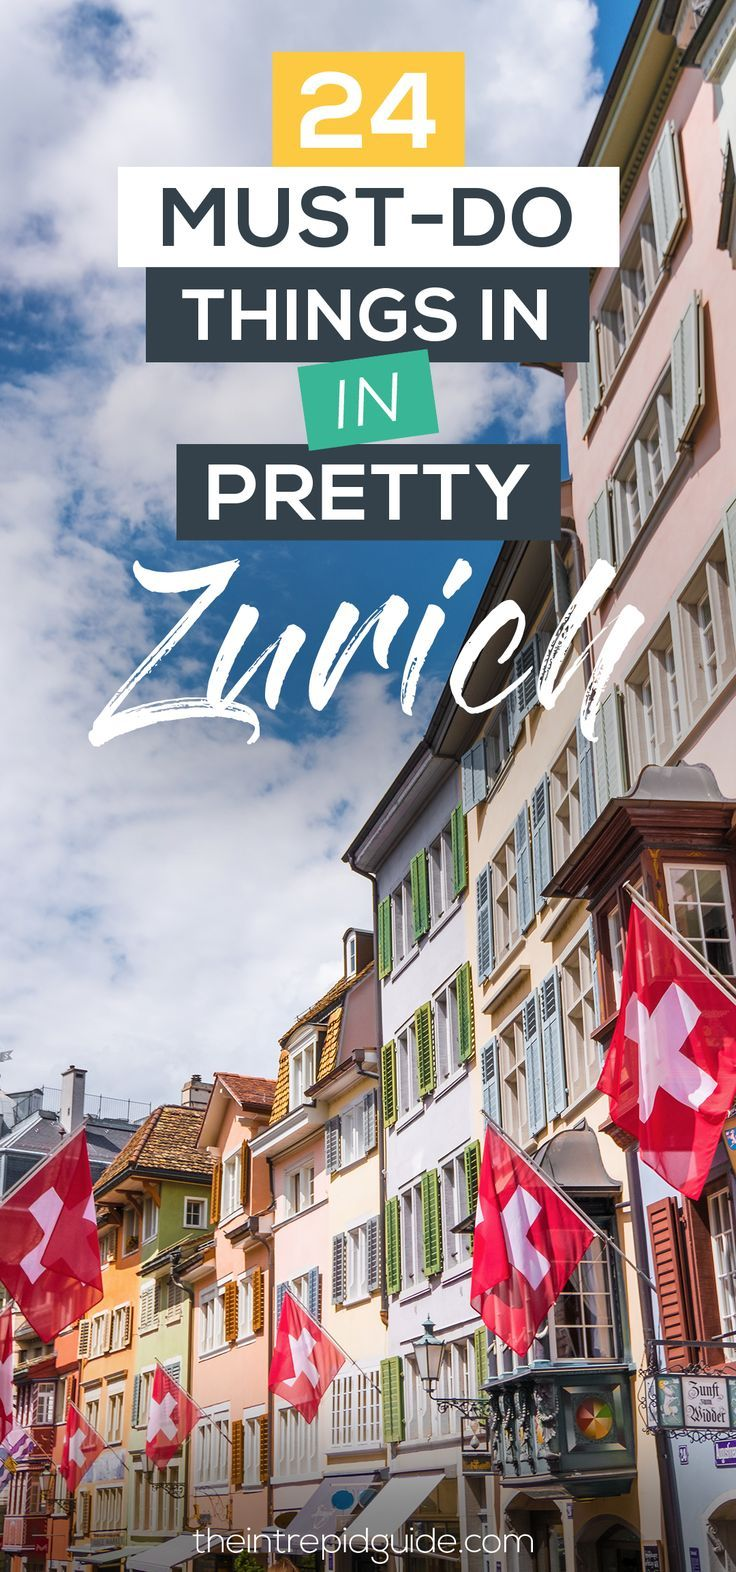 Top 24 Things to do in Zurich